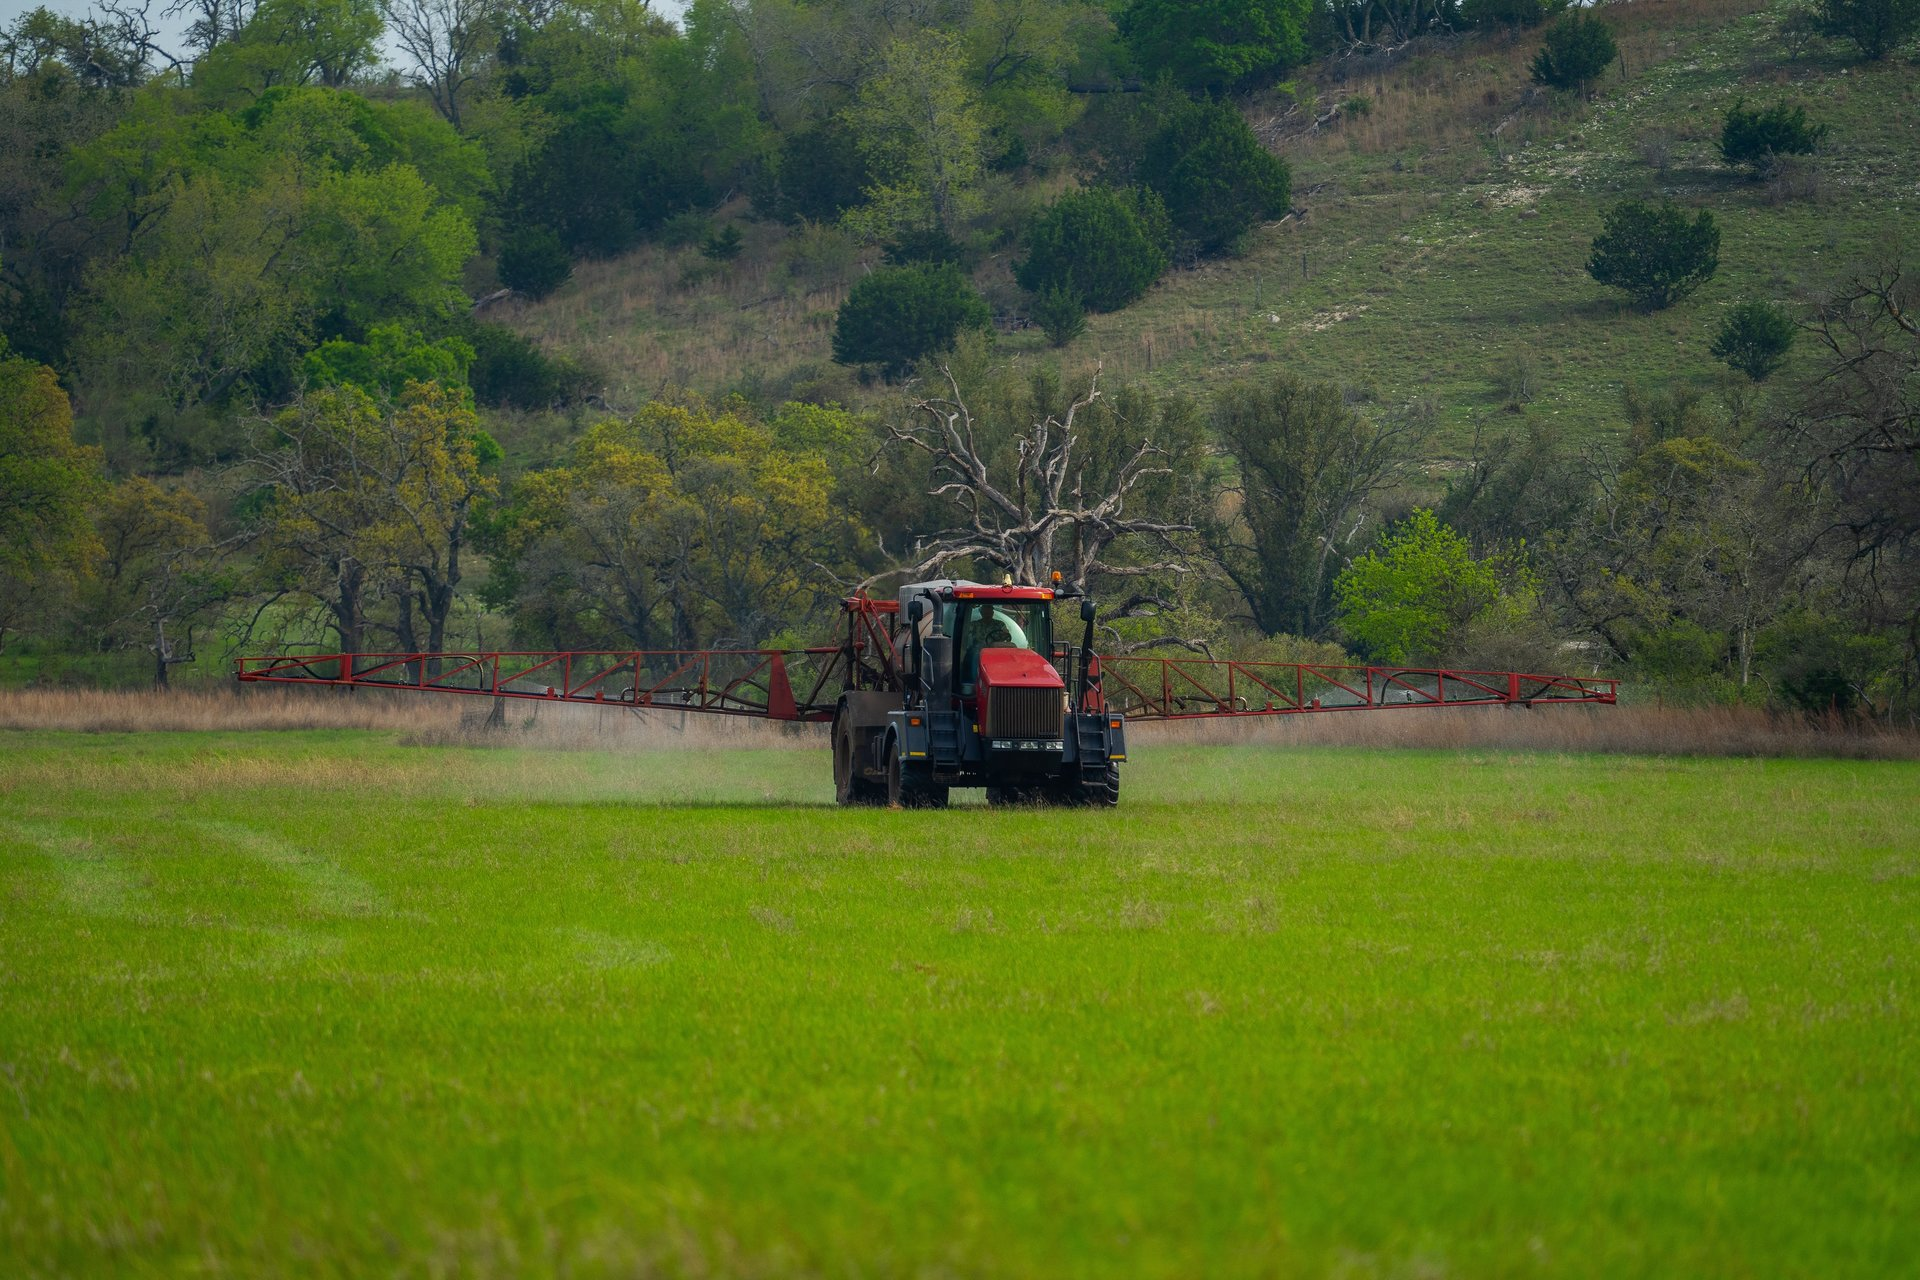 The Texas Hill Country's choice in fertilizer and crop production